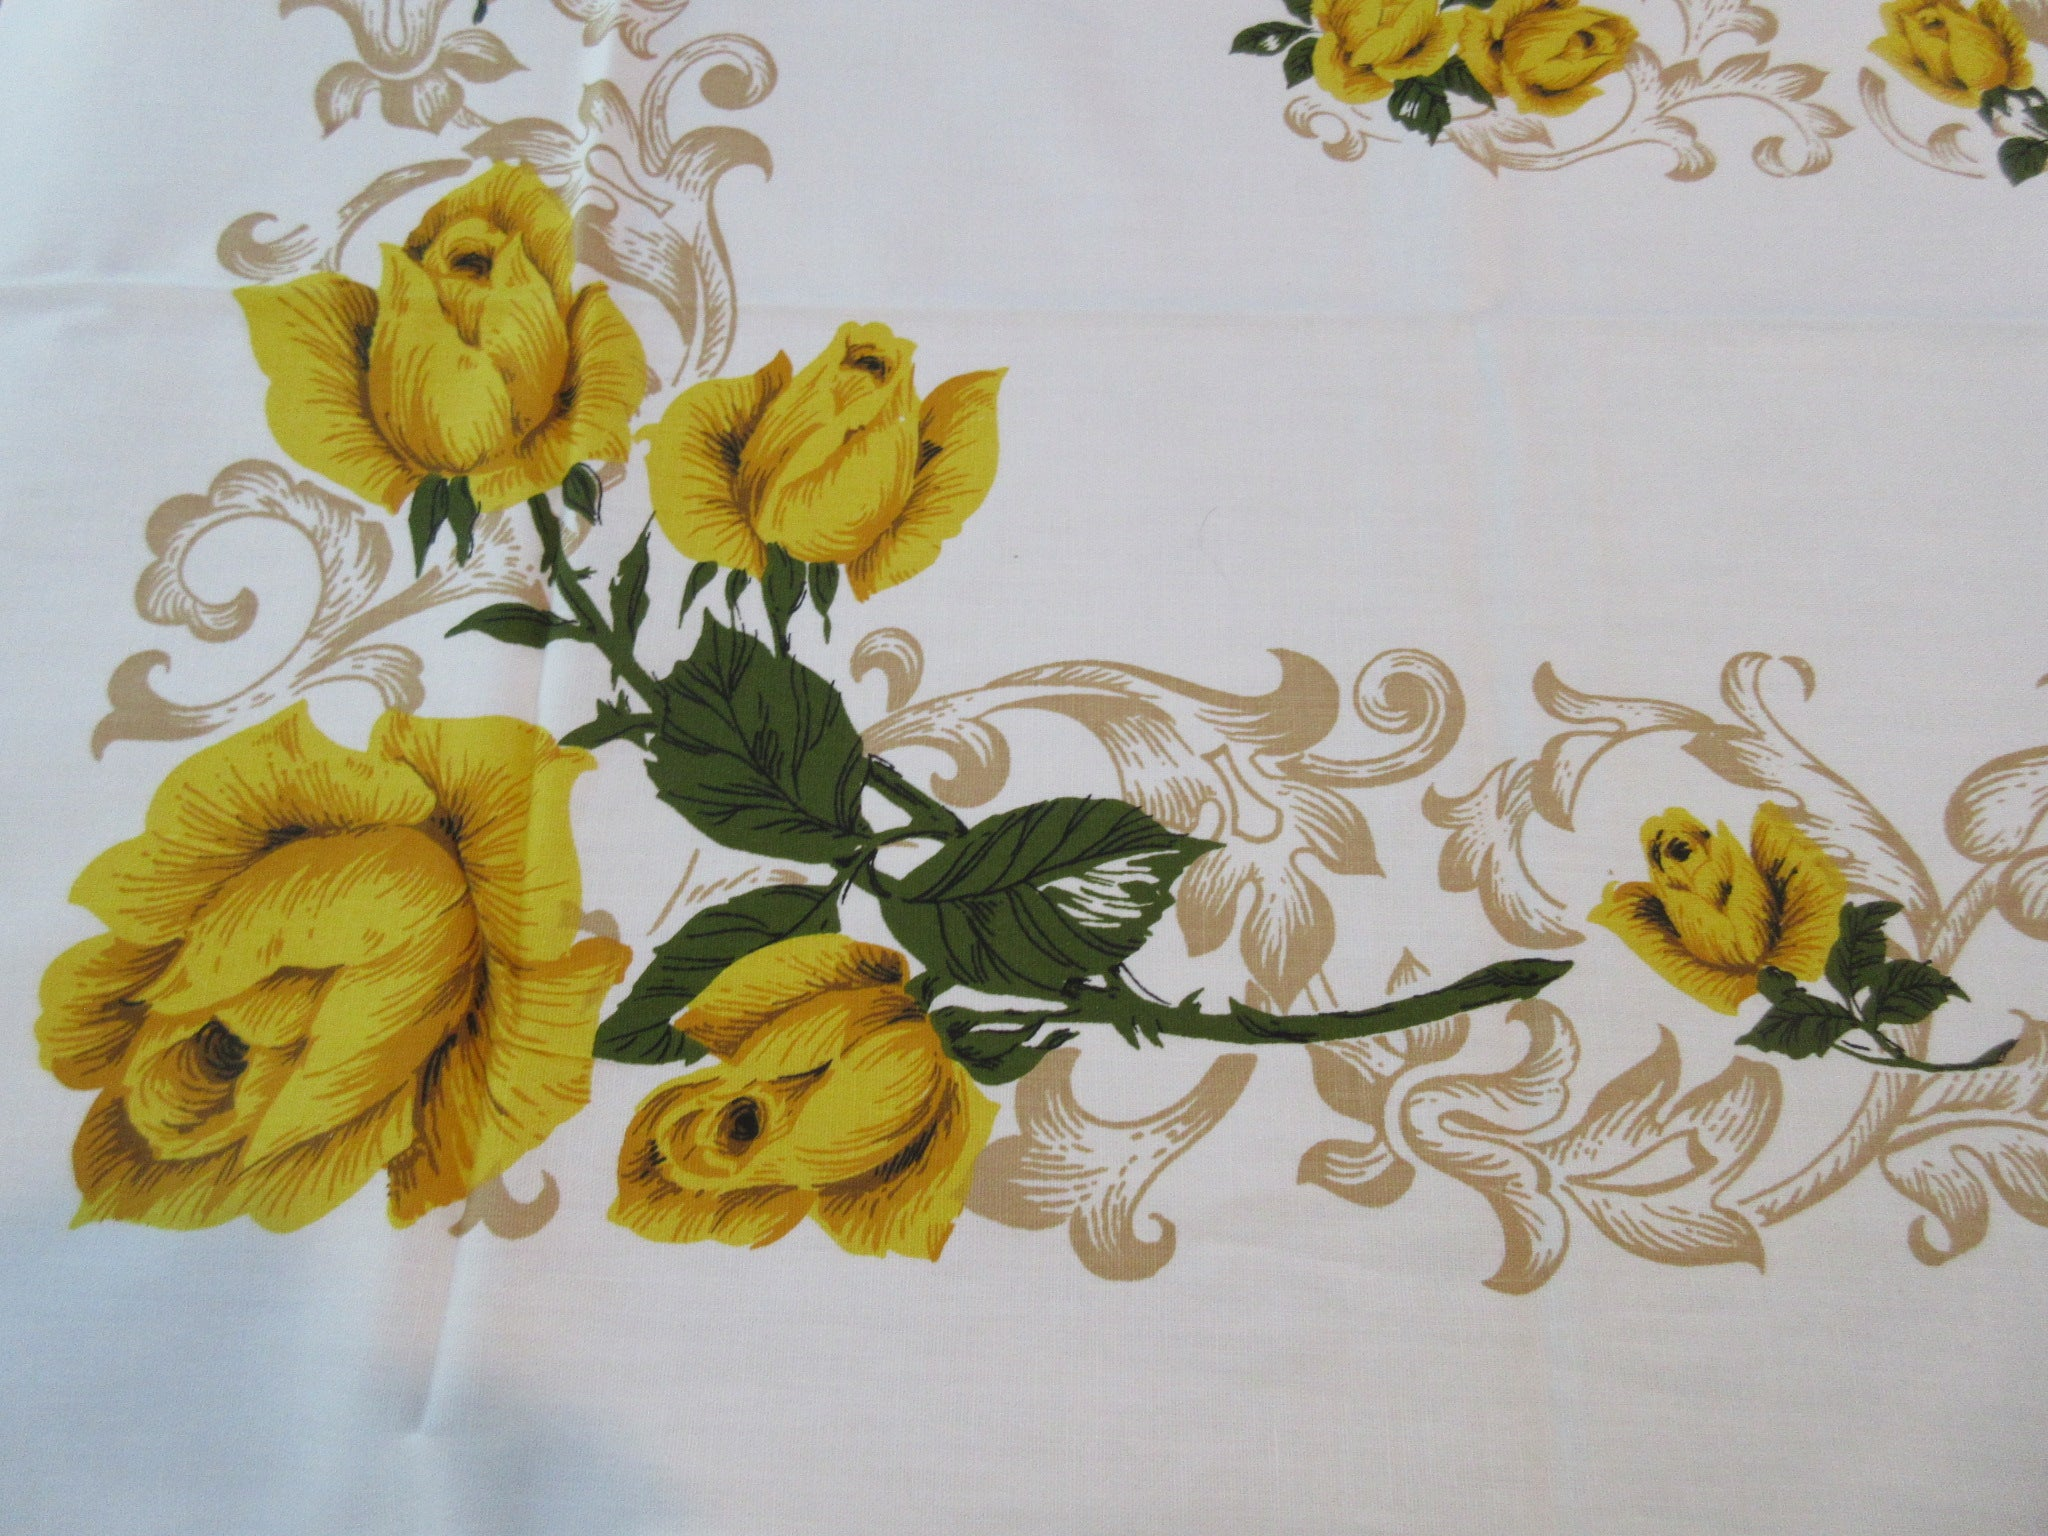 Fall Yellow Roses MWT Floral Vintage Printed Tablecloth (70 X 52)